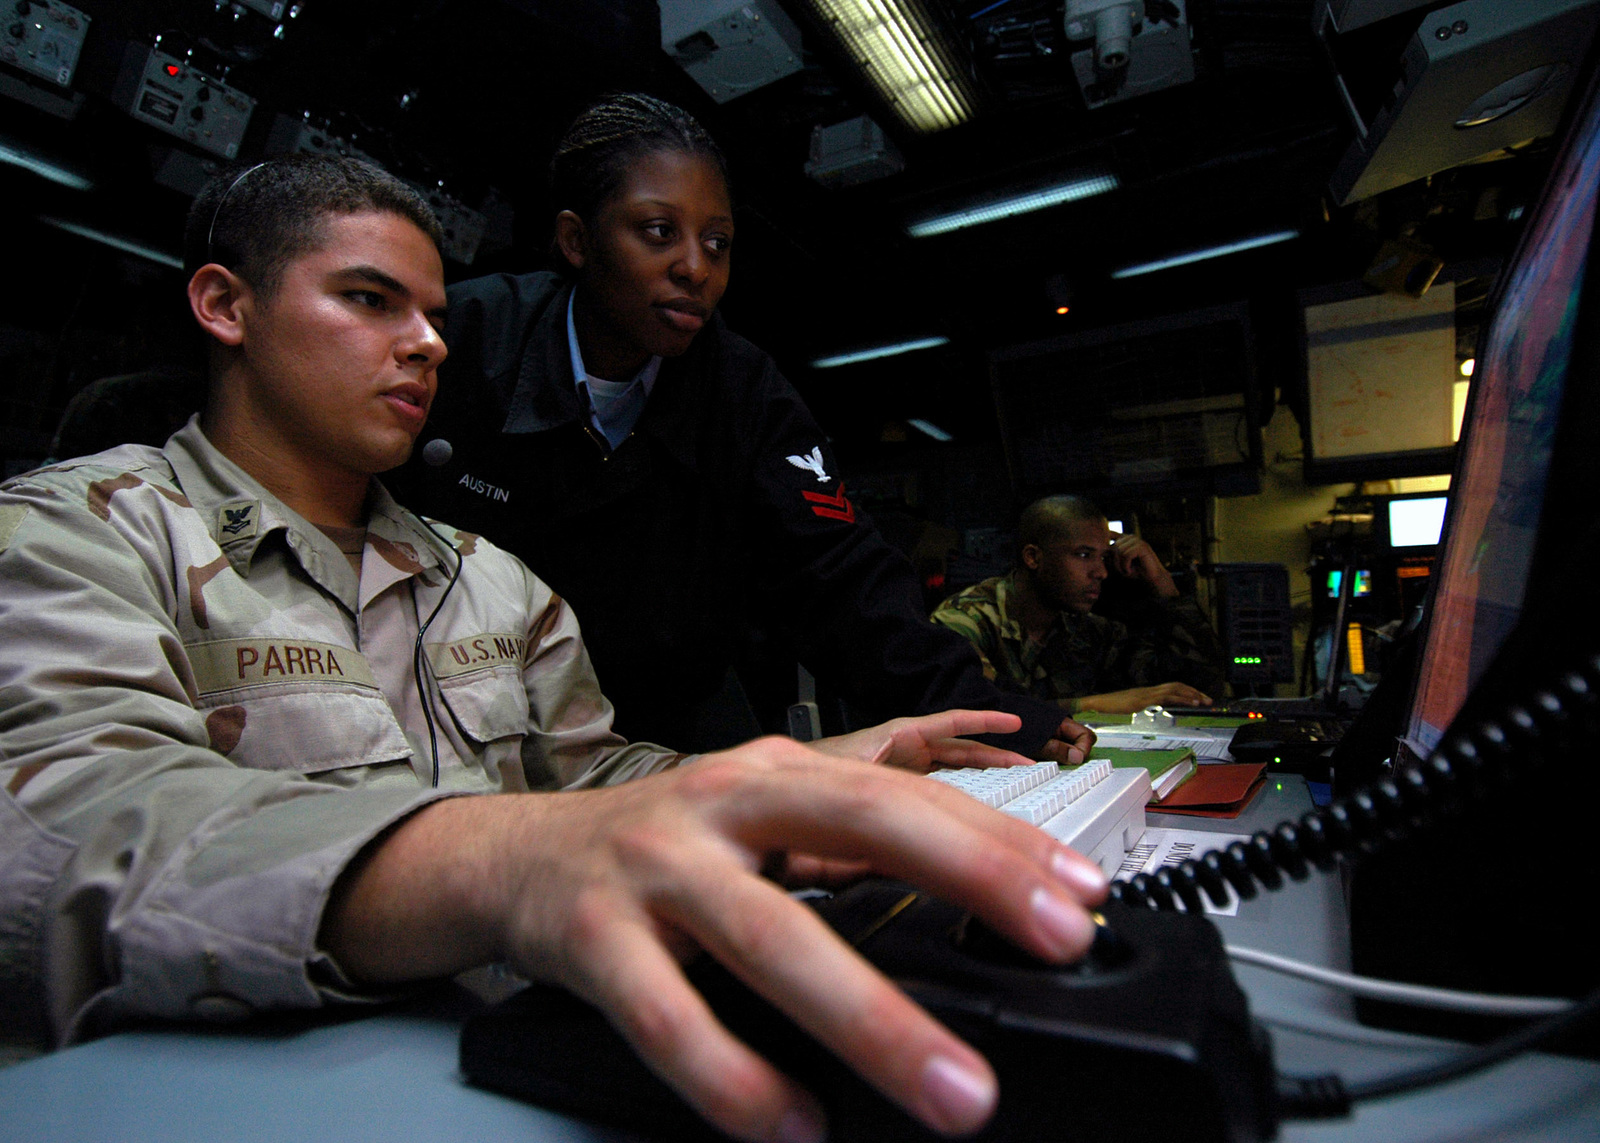 U.S. Navy PETTY Officer 2nd Class Miguel Parra, and PETTY Officer 2nd Class Tina Austin, Air Traffic Controllers, Tactical Air Control Squadron 22 (TACRON-22), man the Tactical Air Control Center aboard the Wasp Class Amphibious Assault Ship USS IWO JIMA (LHD 7) on Aug. 30, 2006. The IWO JIMA is on a six-month deployment to the Gulf of Aden in support of Maritime Security Operations and the Global War on Terrorism.(U.S. Navy photo by Mass Communication SPECIALIST Joshua T. Rodriguez) (Released)